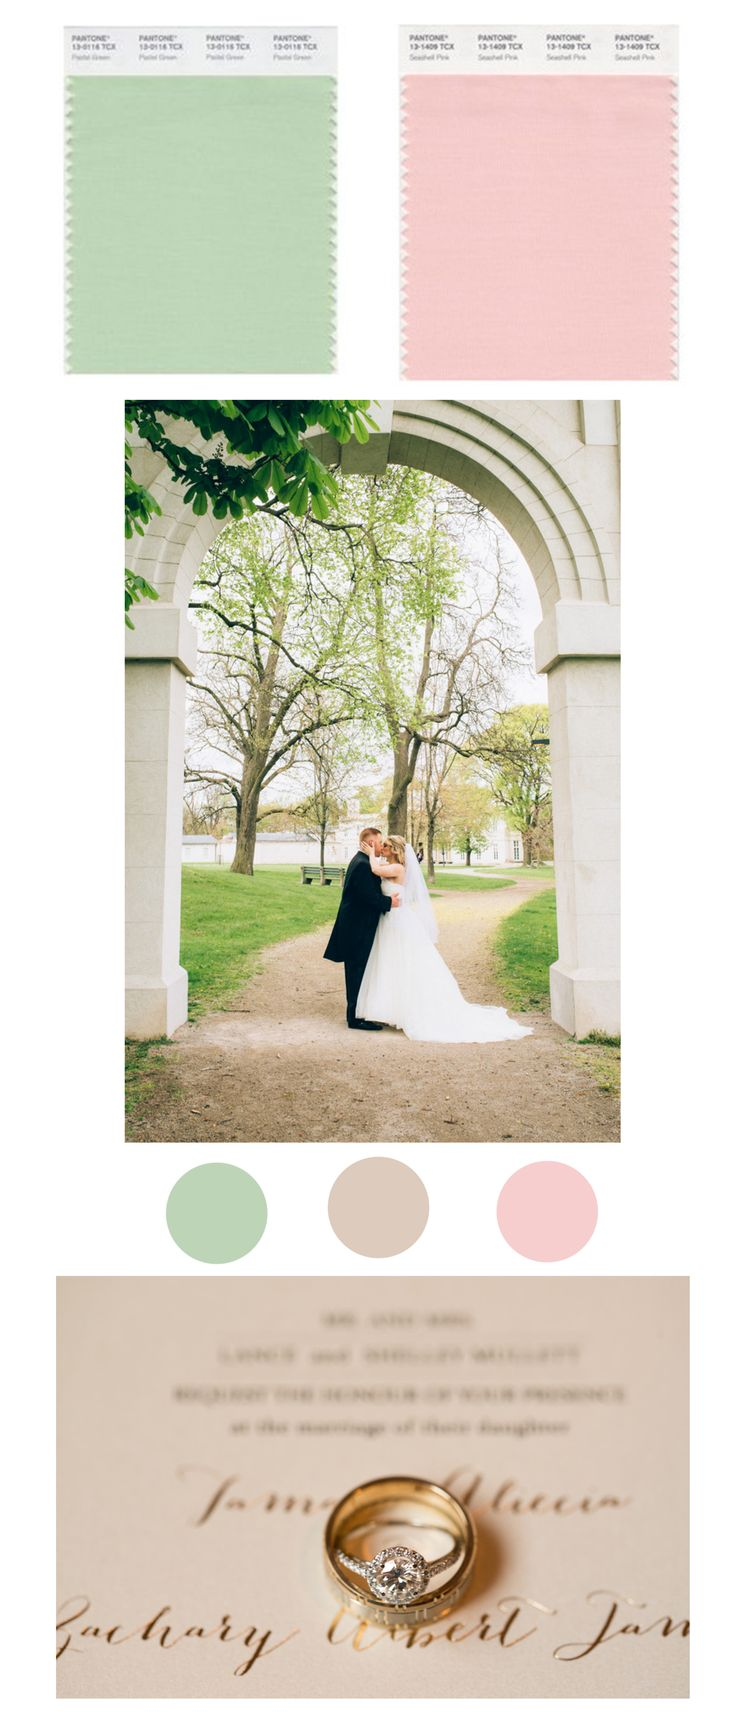 Soundslikeyellowphotography   Toronto Wedding Photographer Dundurn Castle